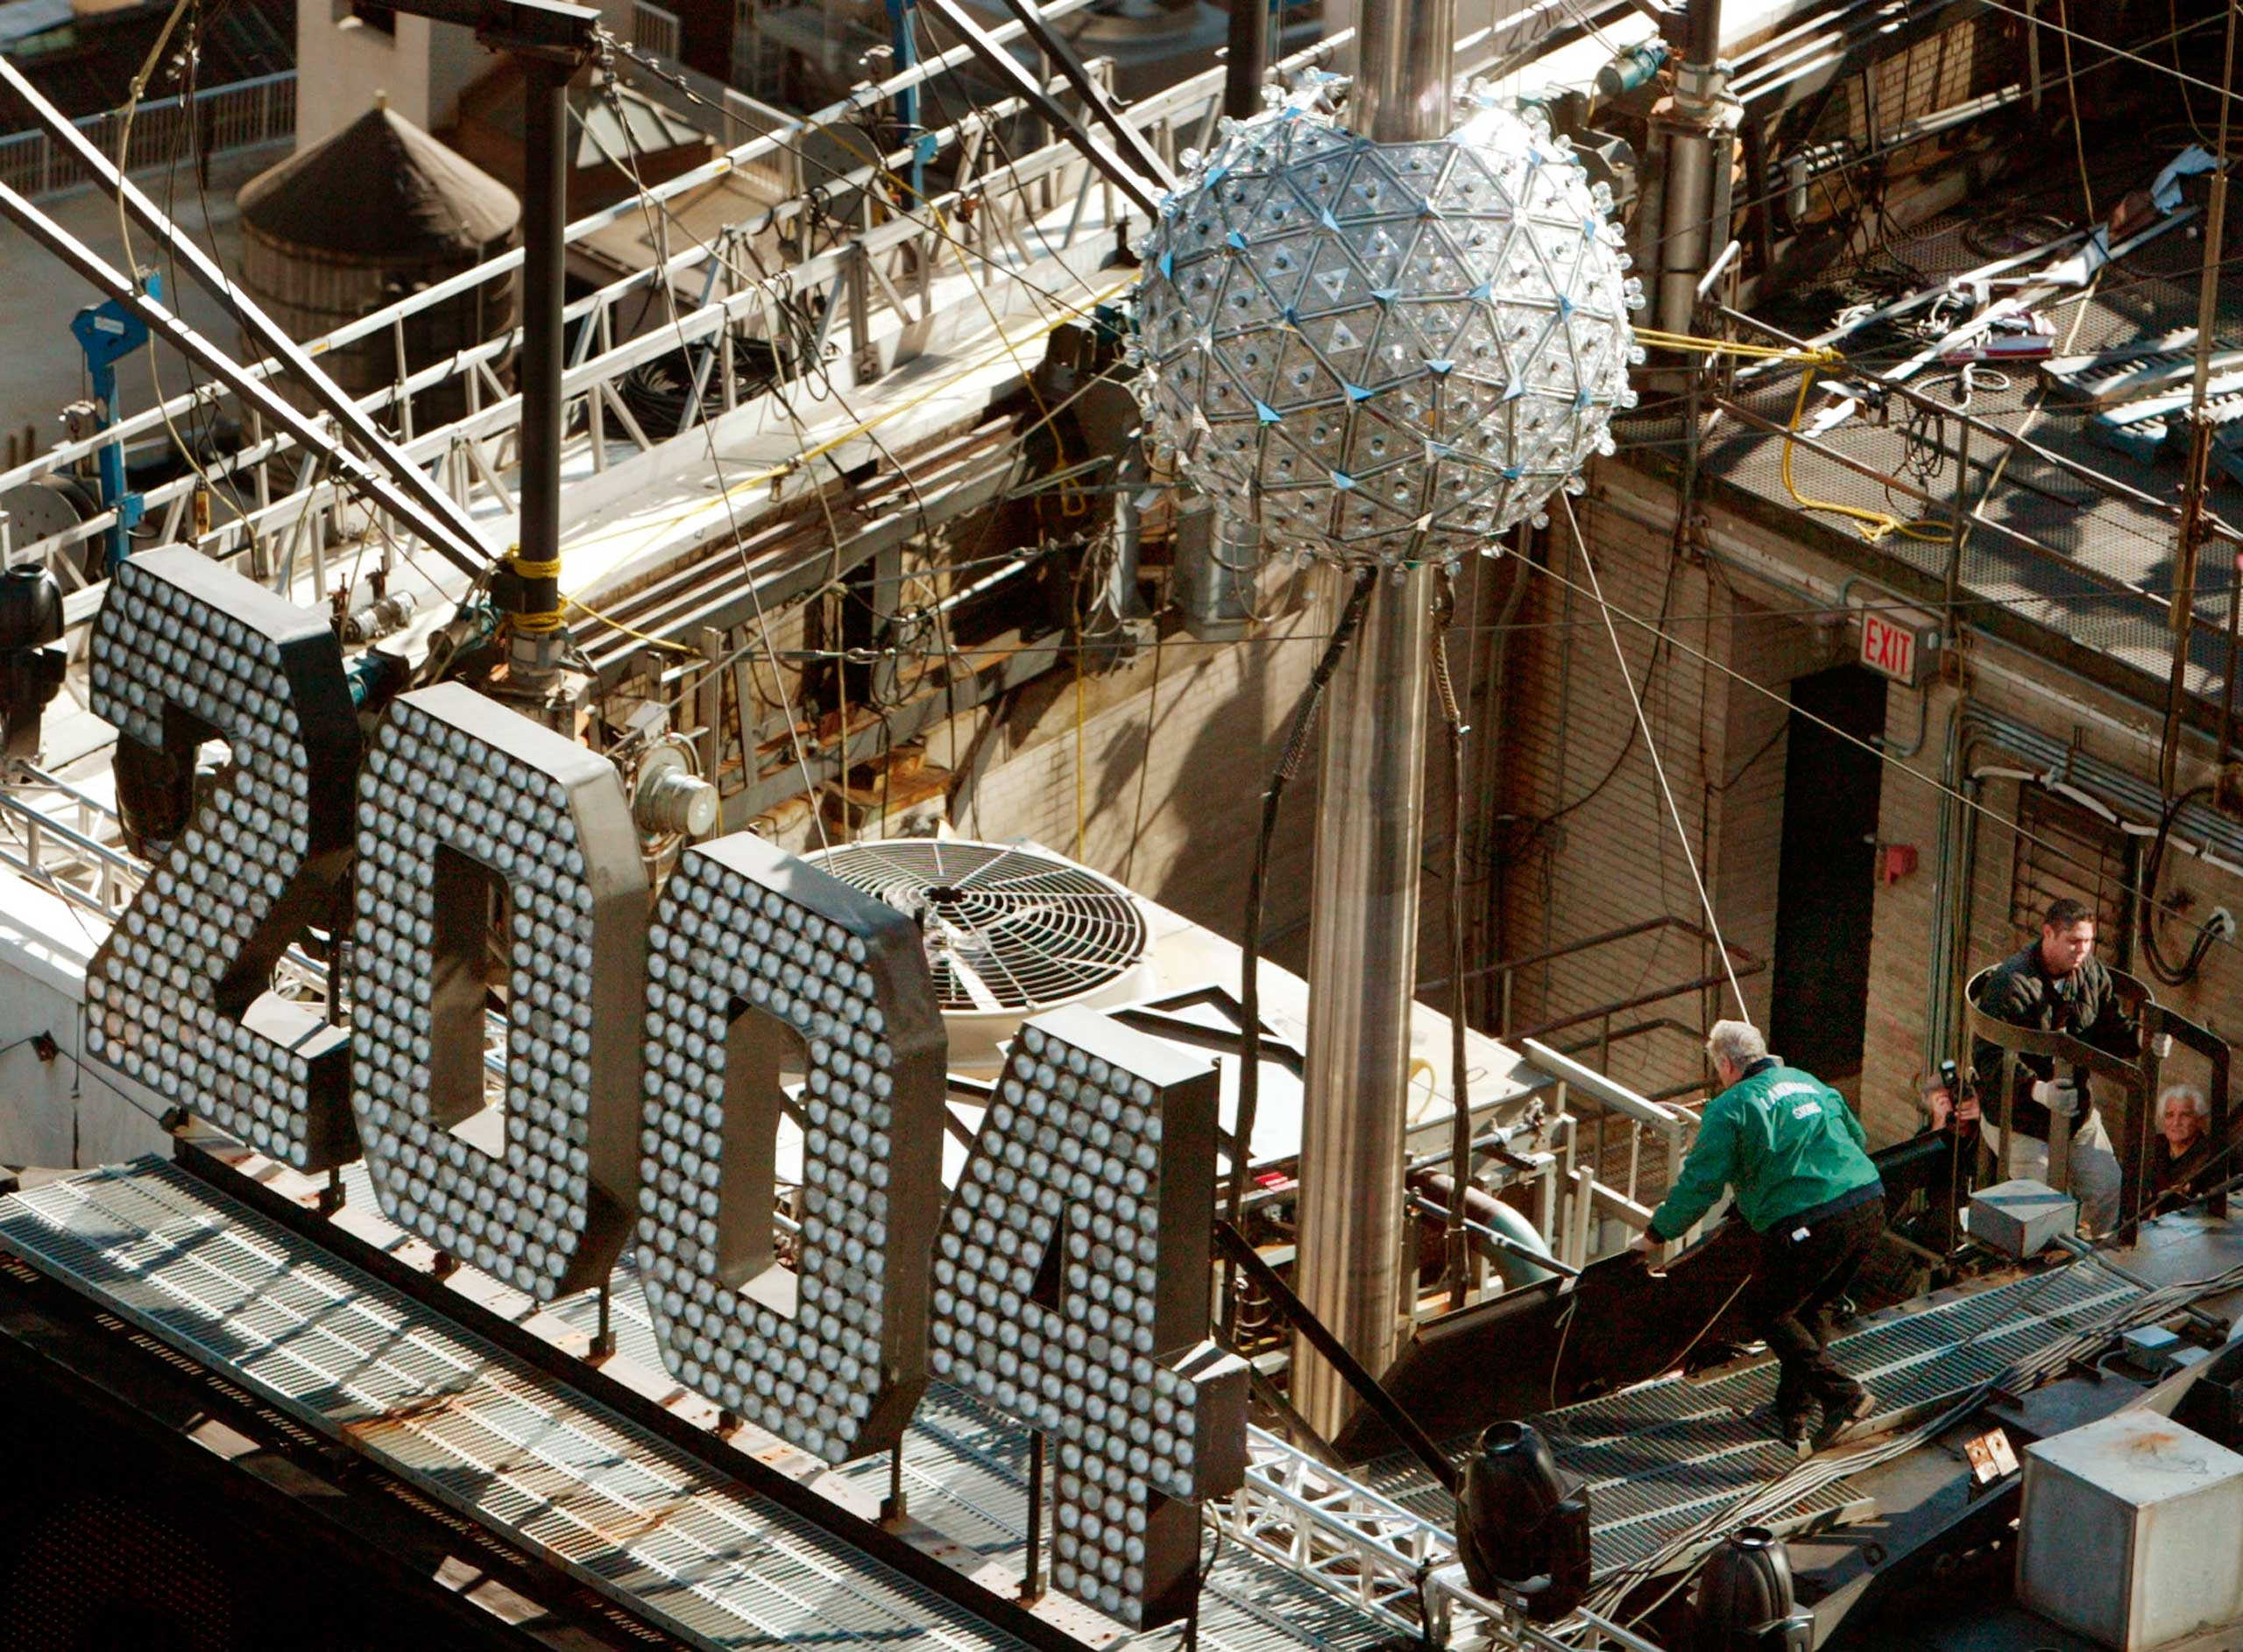 Workers test a giant 1,070-pound, six-foot diameter Waterford Crystal ball,  in New York City on Dec. 30, 2003.